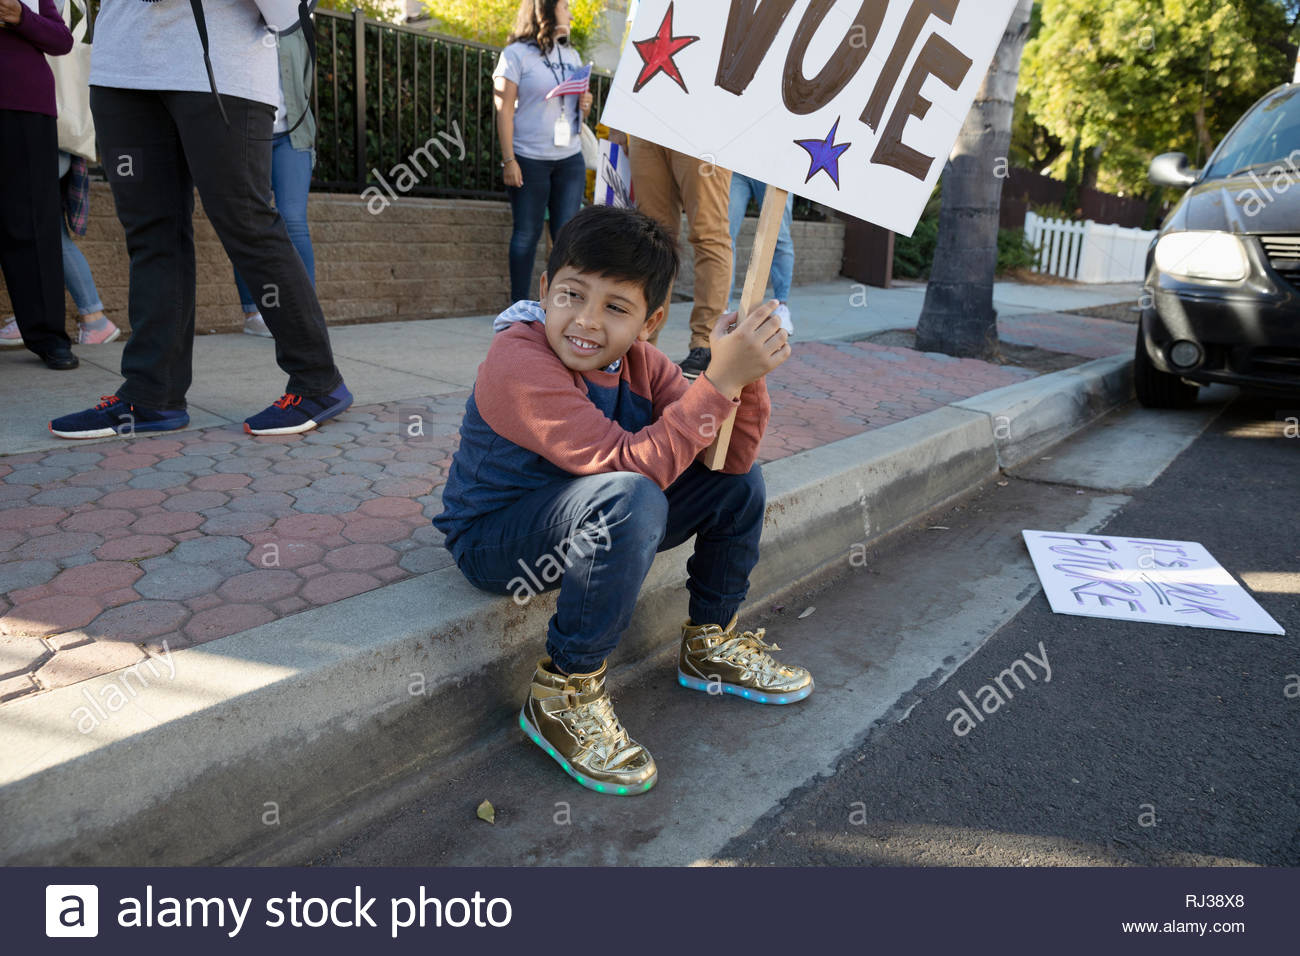 Latinx boy volunteering, canvassing voters on curb - Stock Image